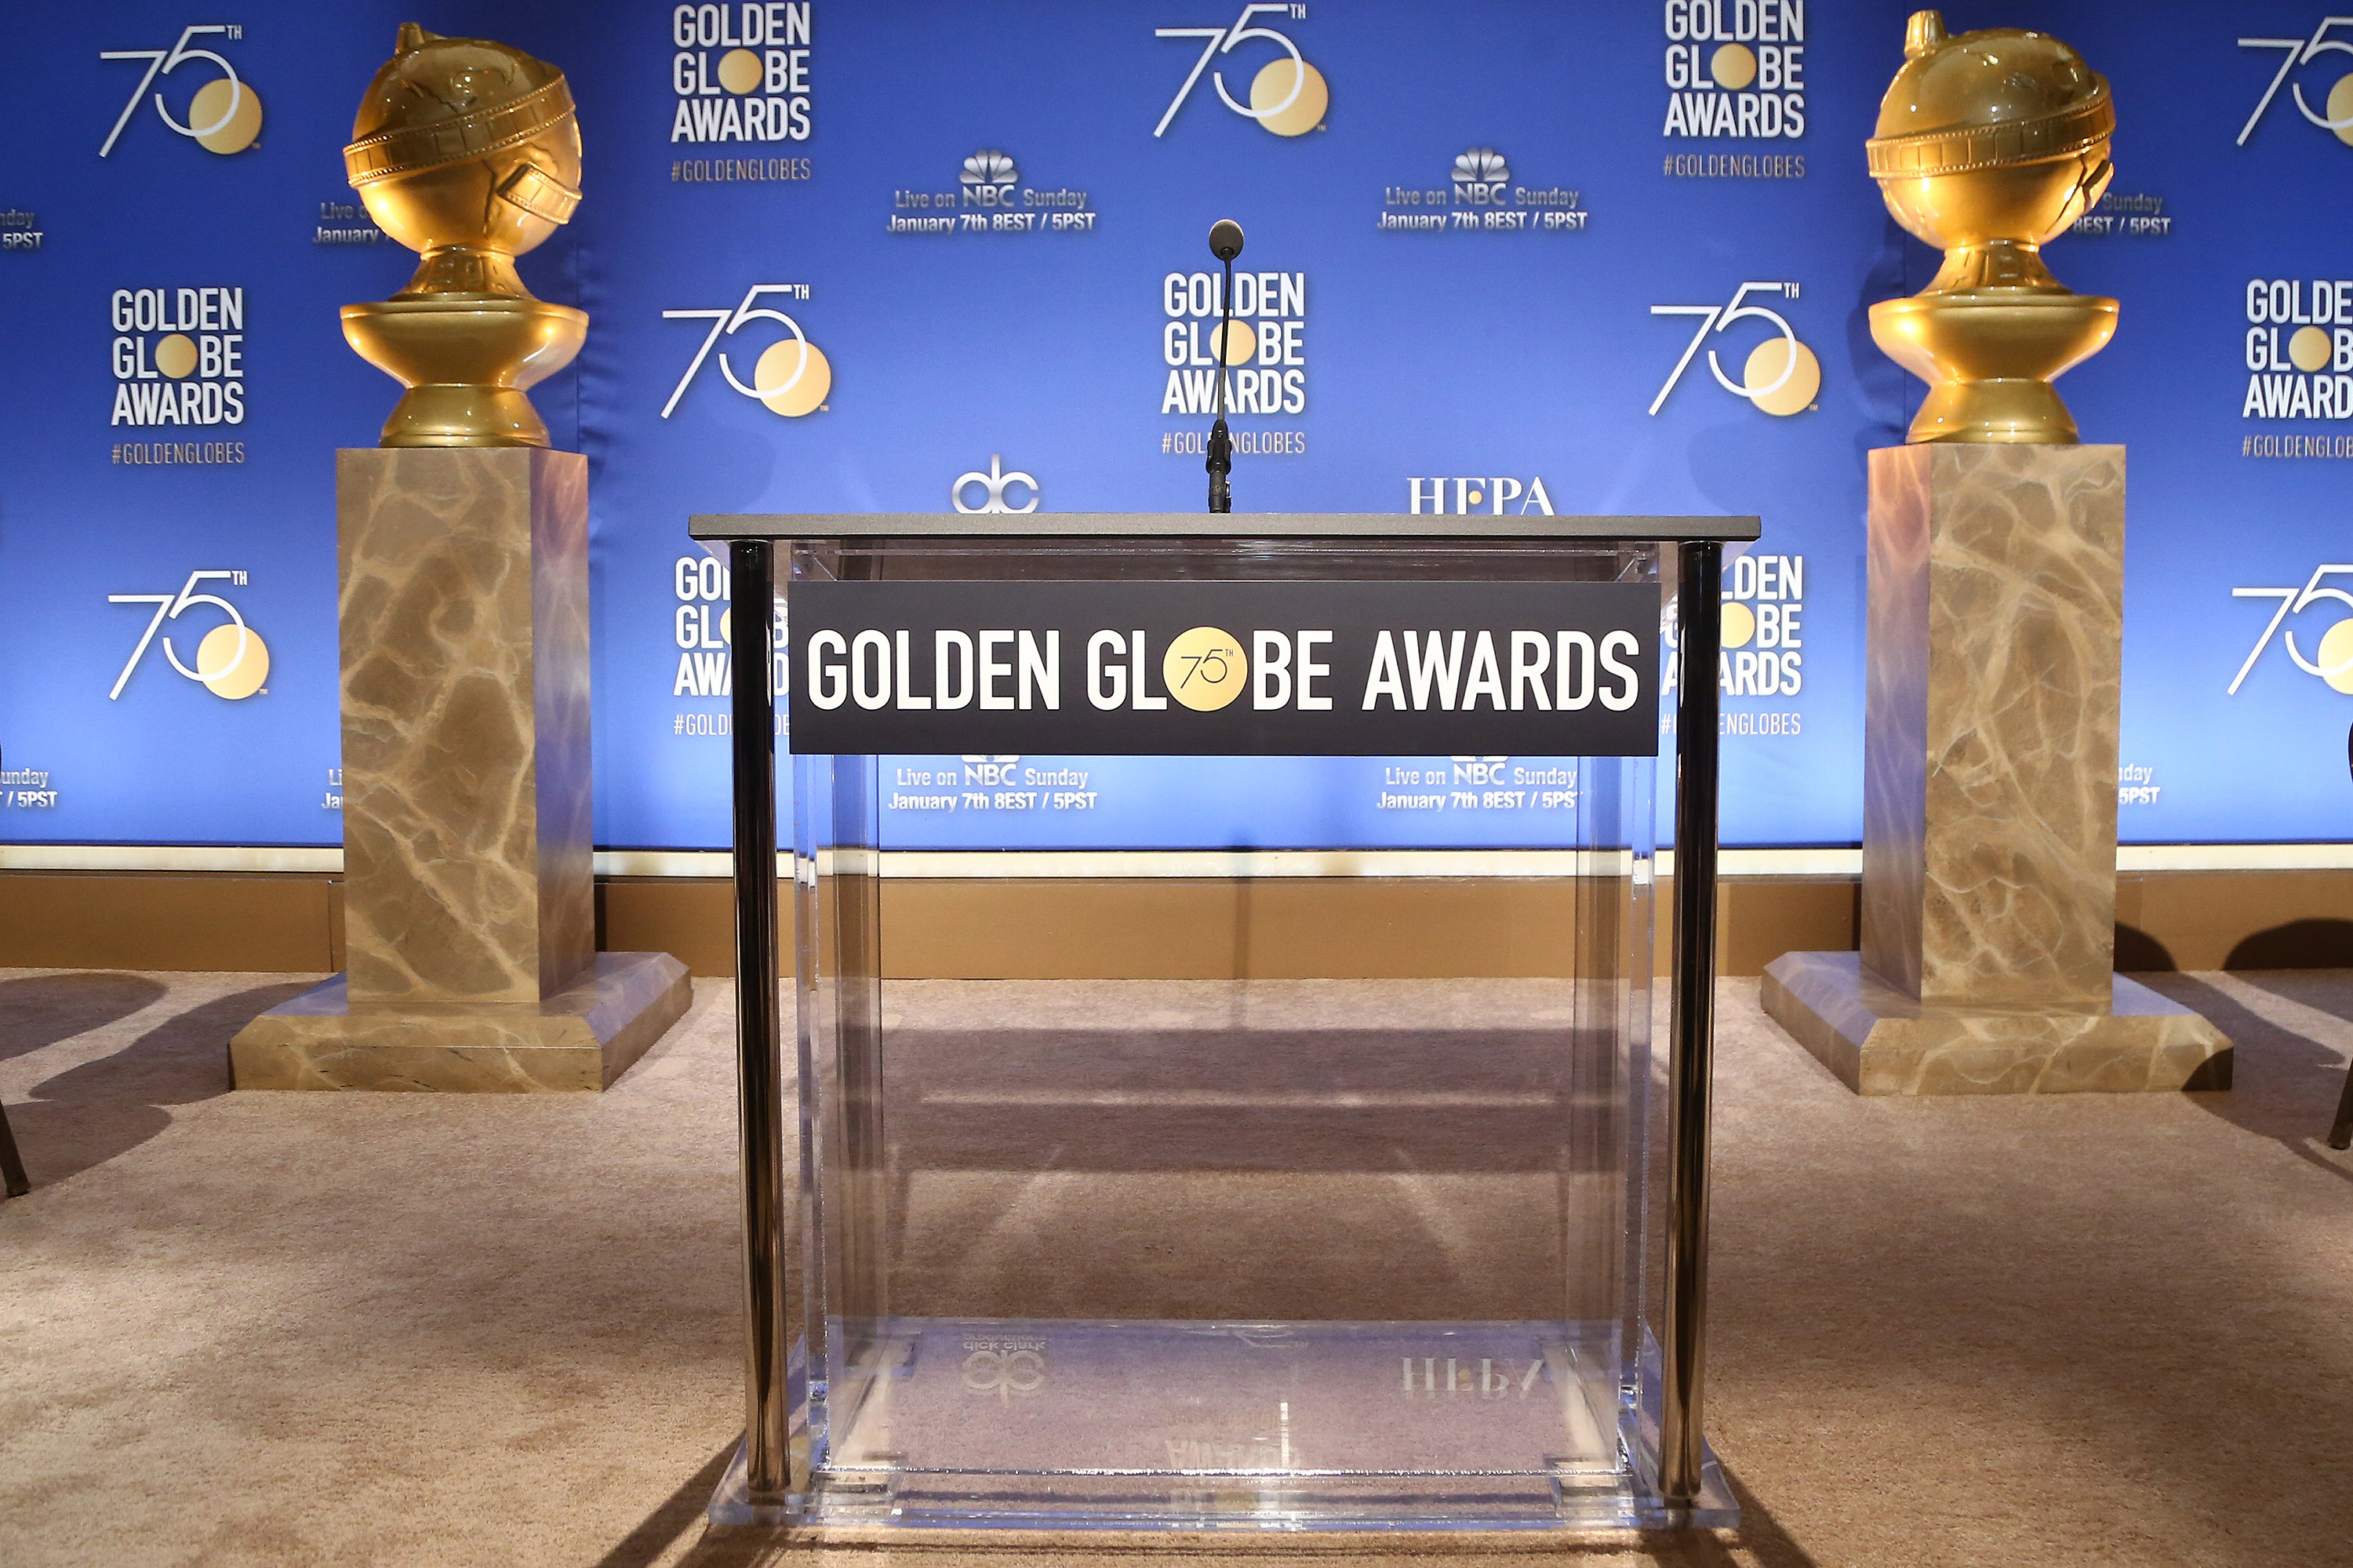 A general view of the atmosphere during the 75th Annual Golden Globe Nominations Announcement on December 11, 2017 in Los Angeles, California.